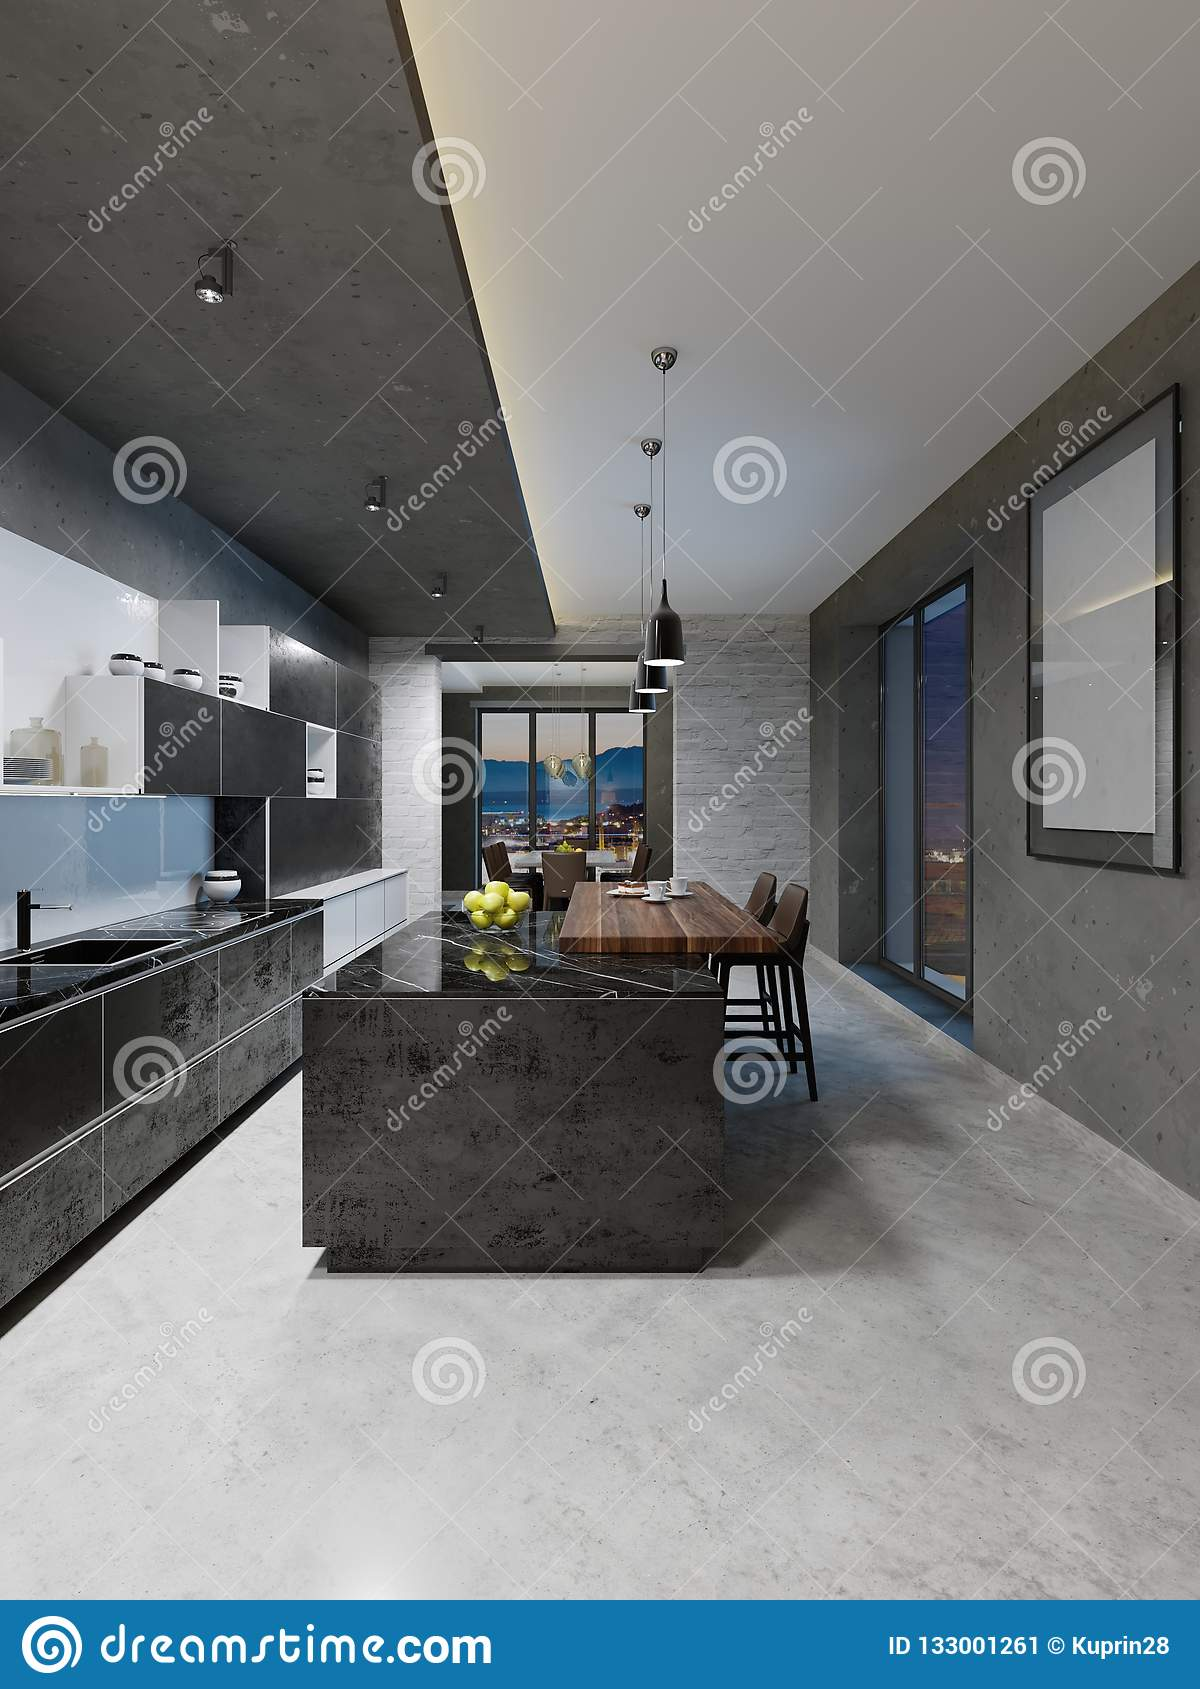 Long Kitchen Design Pictures Modern Kitchen Design With A Long Center Island And Bar Table Fitted